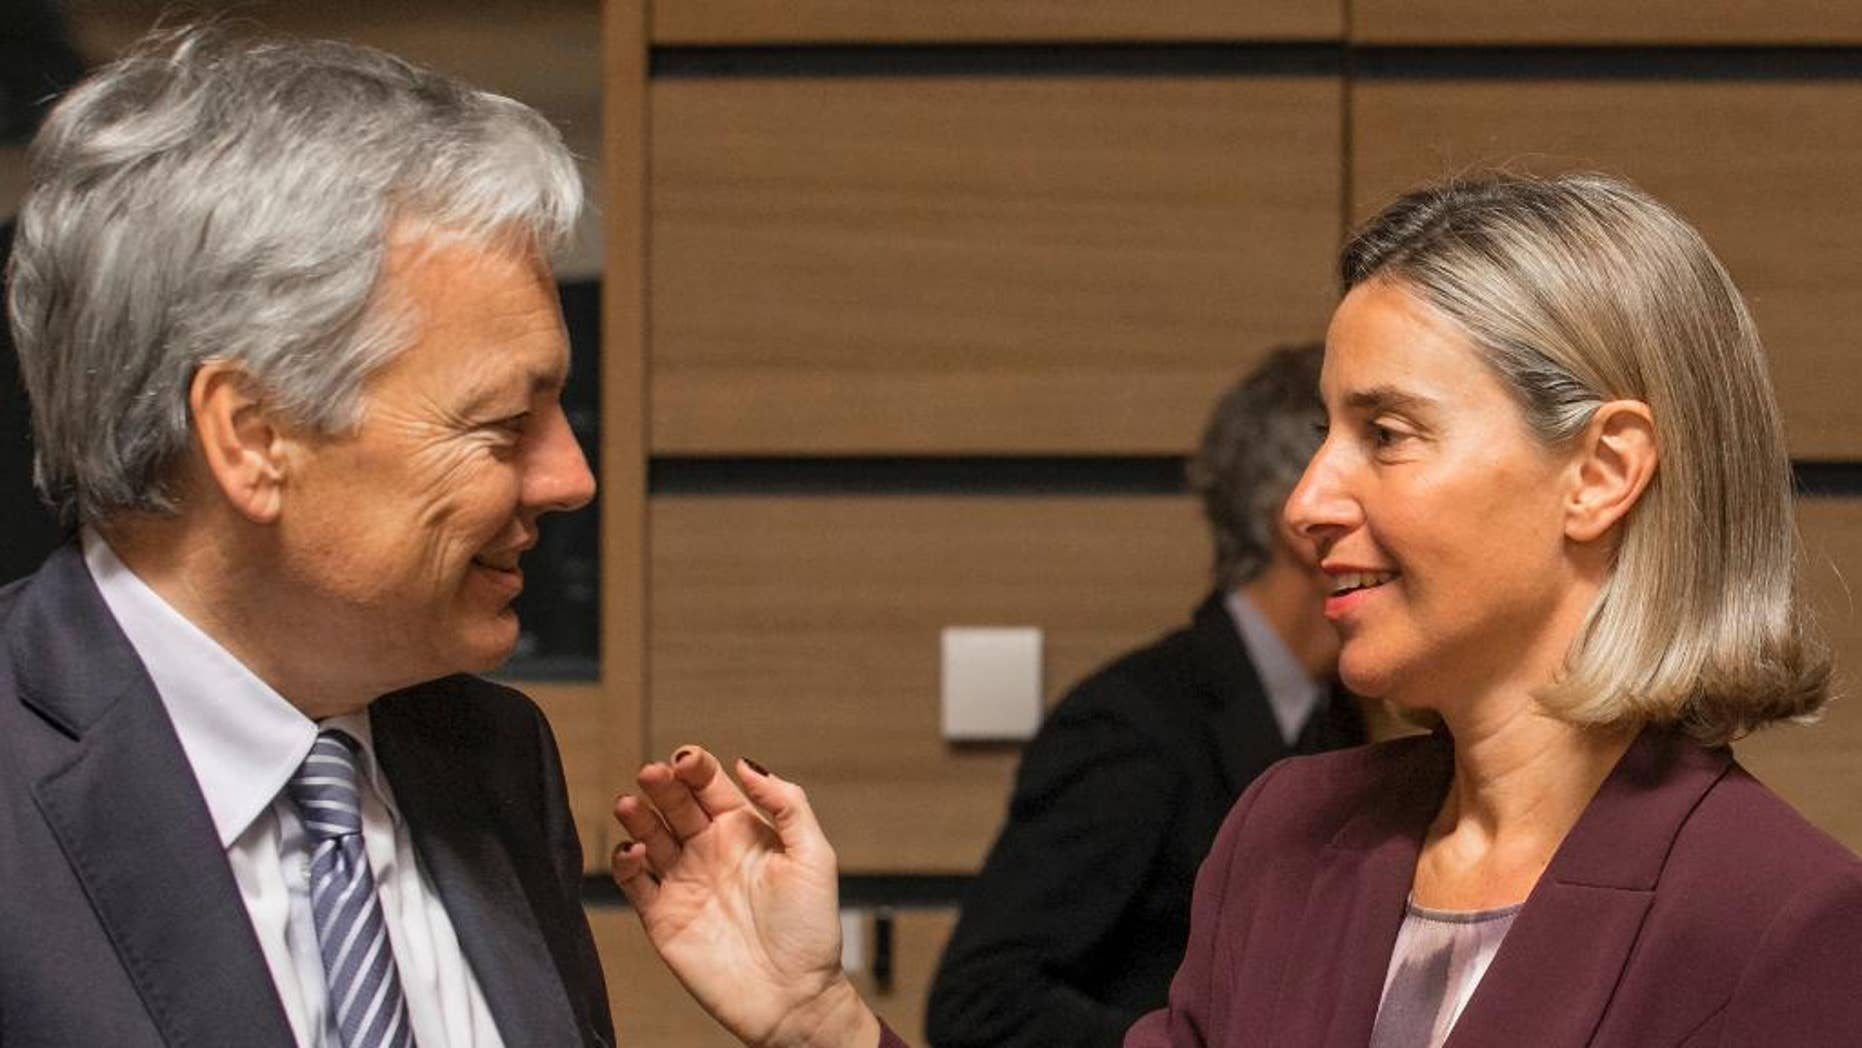 Belgium's foreign minister Didier Reynders, left, speaks with EU Council High representative Federica Mogherini during a meeting of EU foreign ministers at the EU Council building in Luxembourg, Monday, Oct. 17, 2016. European Union foreign ministers debated Monday whether to extend sanctions against the Syrian regime as political efforts to secure a cease-fire and access for humanitarian aid falter. (AP Photo/Olivier Matthys)